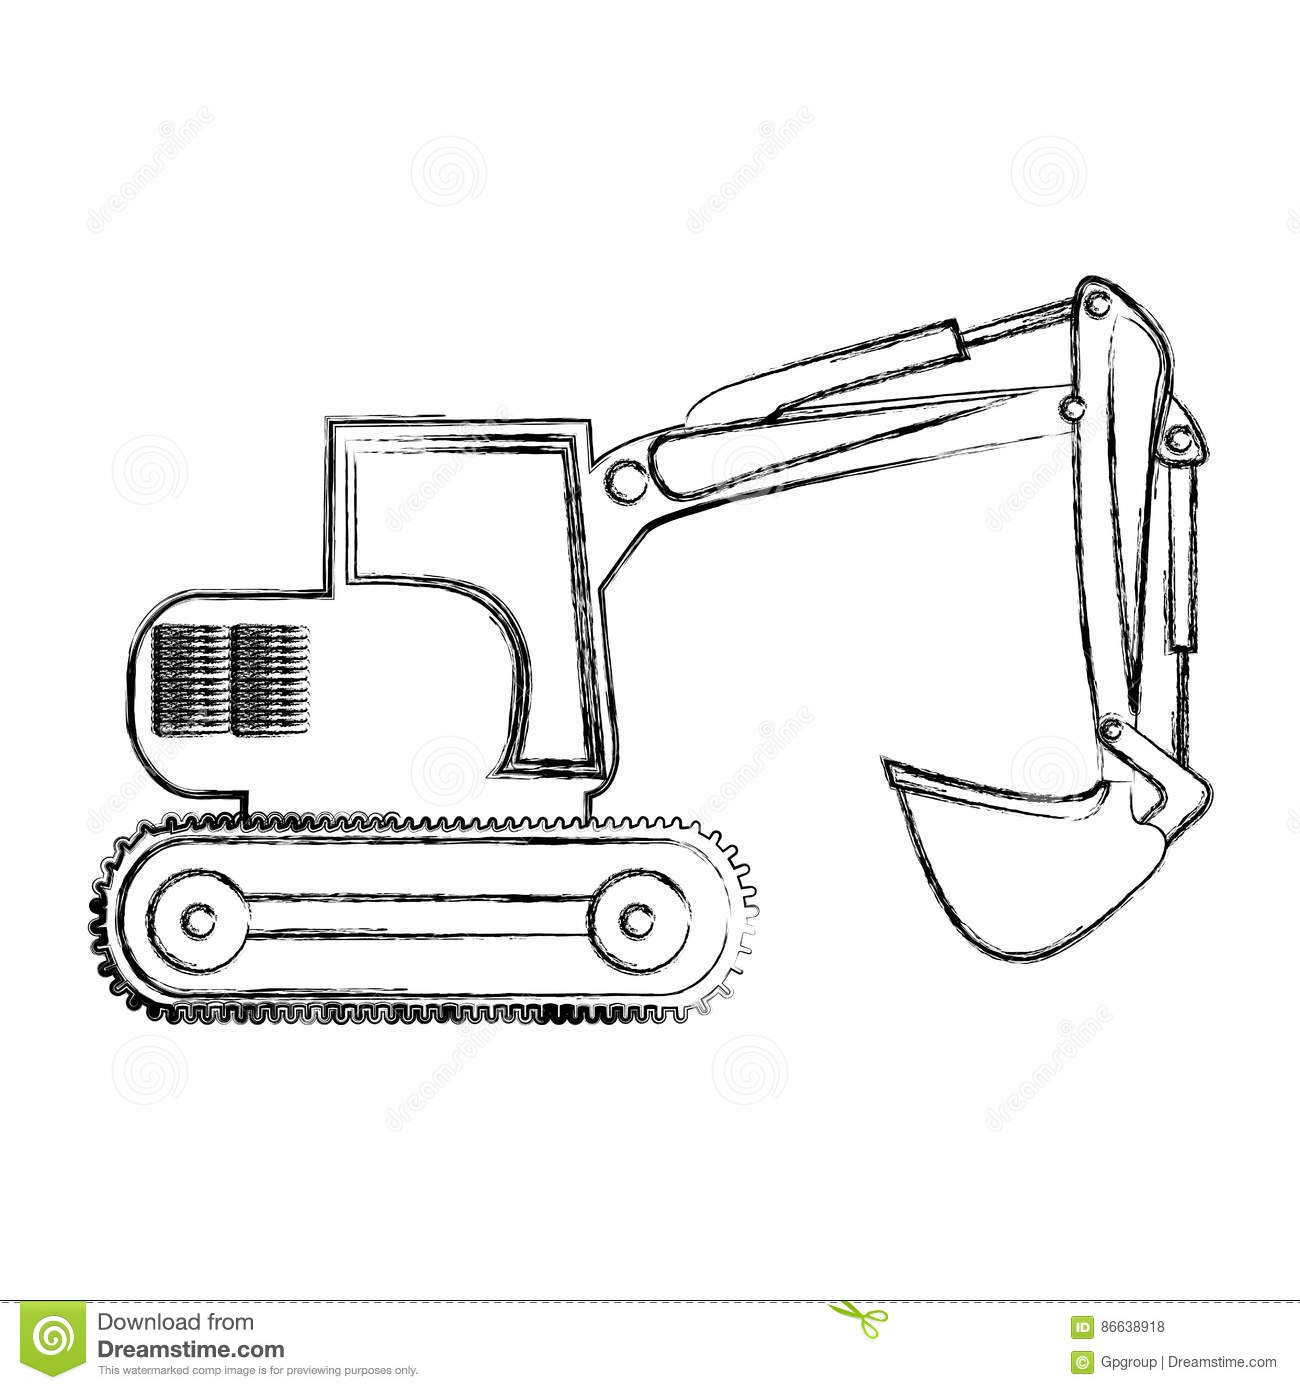 Monochrome Contour Hand Drawing Of Backhoe Stock Illustration ...